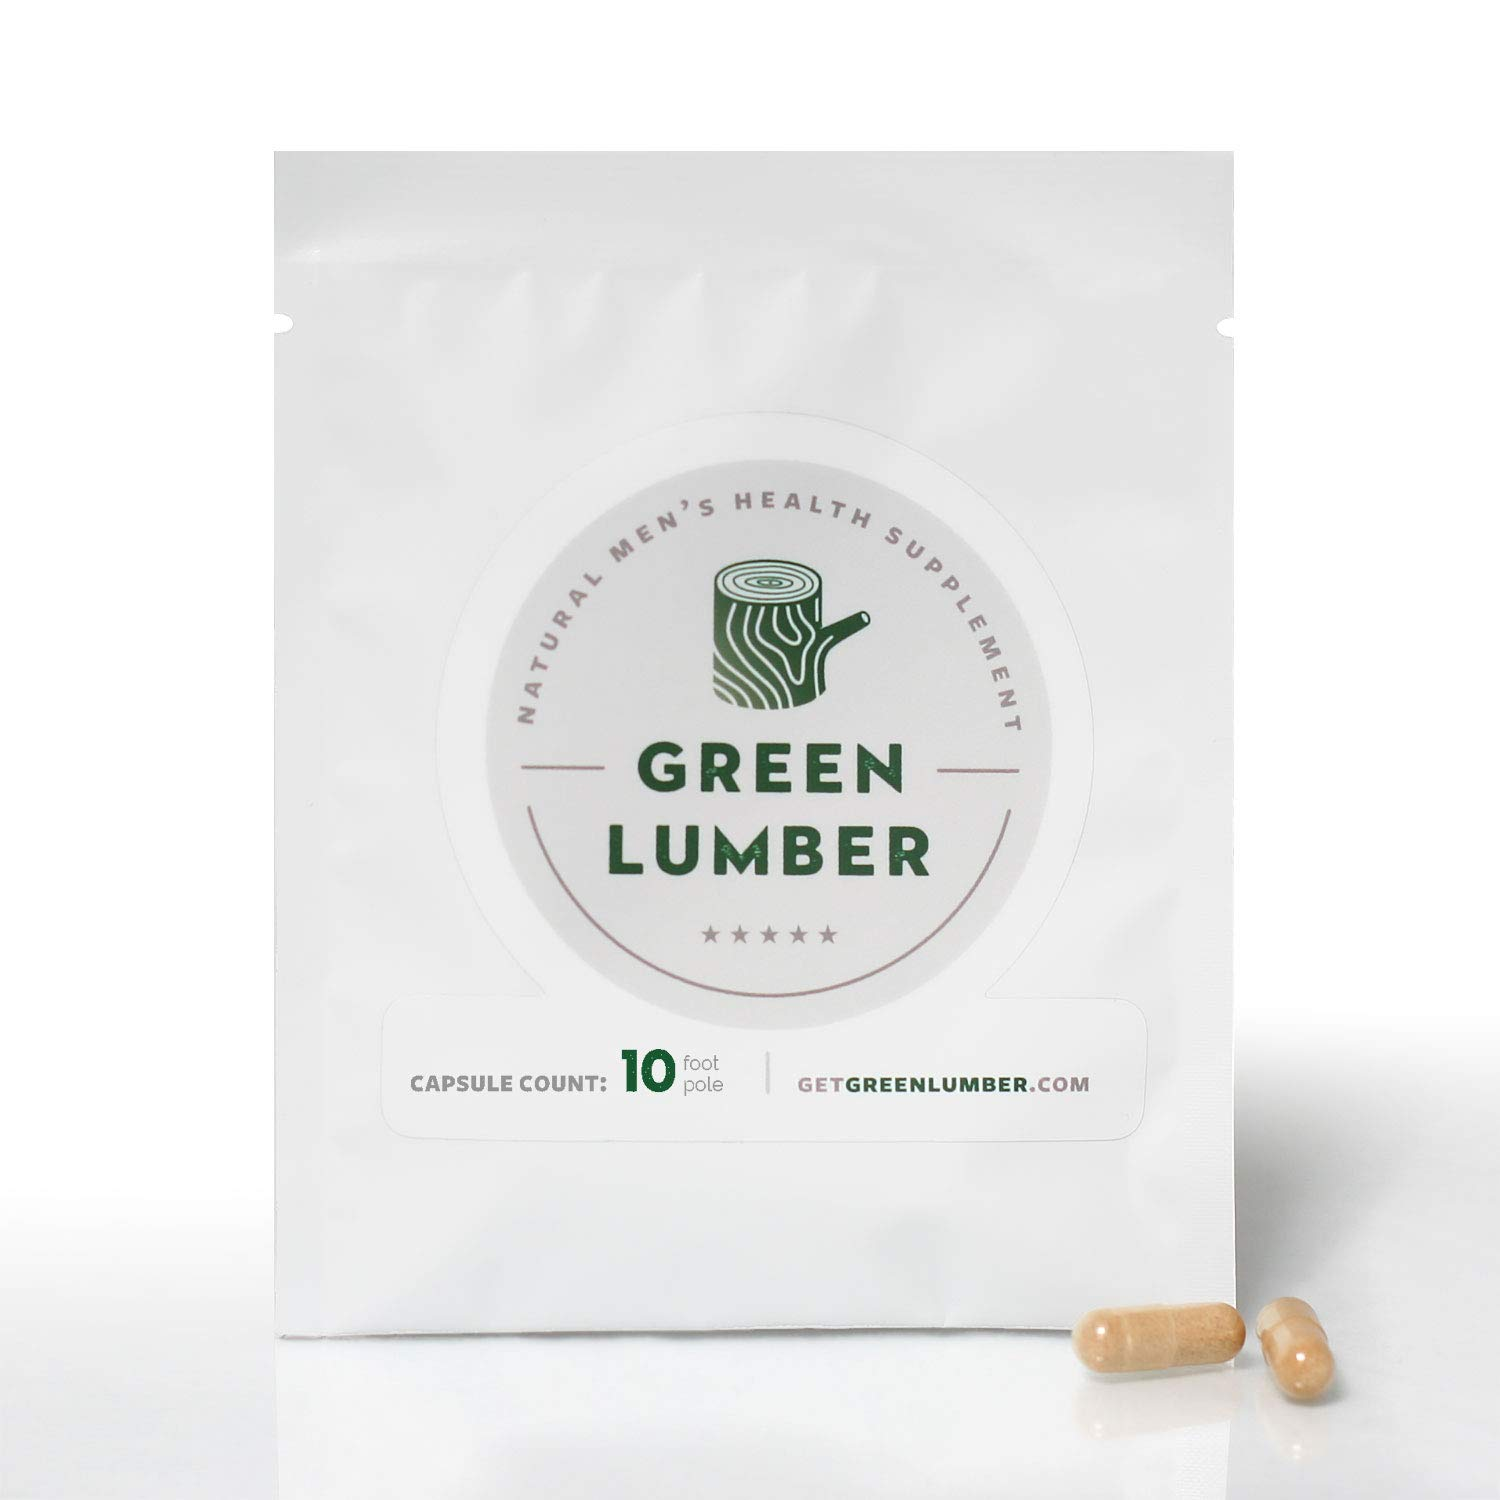 Green Lumber [10 Pack] Supply - All Natural Testosterone Booster Made with Pure Eurycoma Longifolia